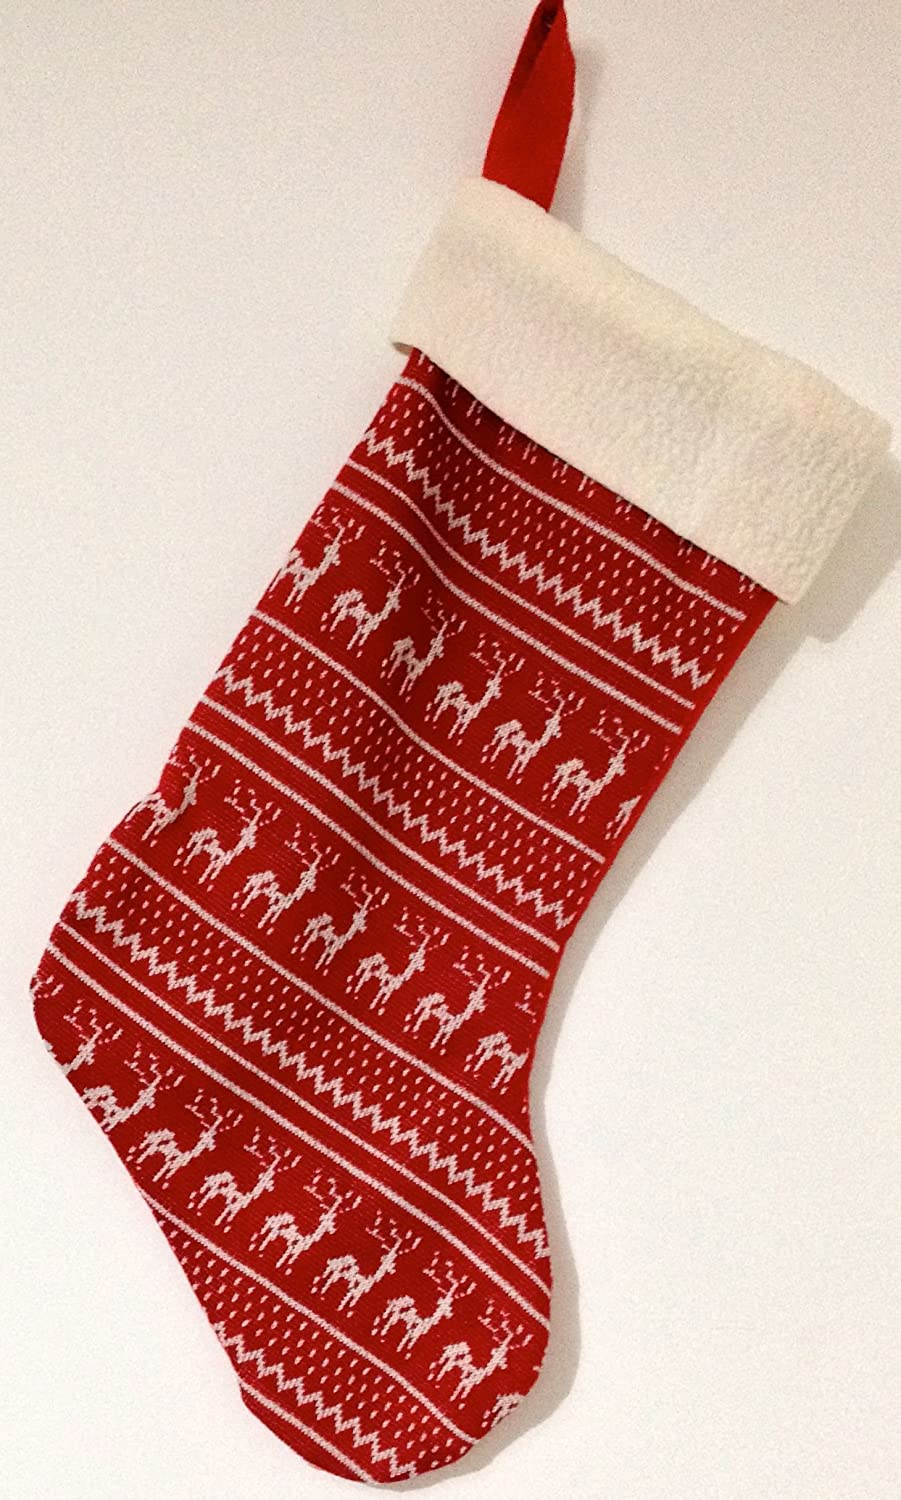 Red and White, Scandinavian / Nordic Style Christmas Stocking ...